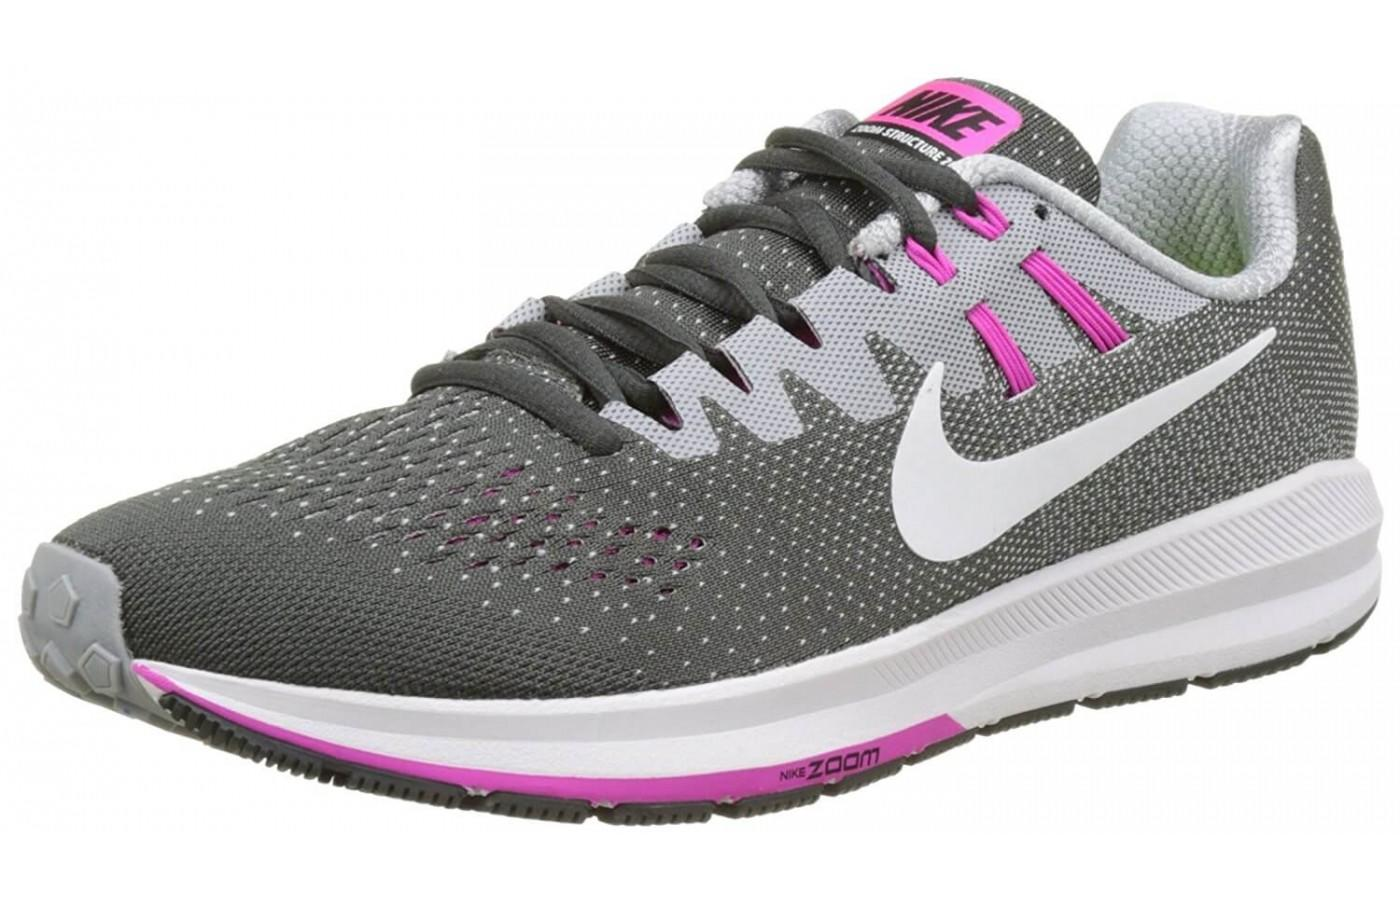 promo code c9471 99162 A good look at the left side of Nike air zoom structure 20 ...